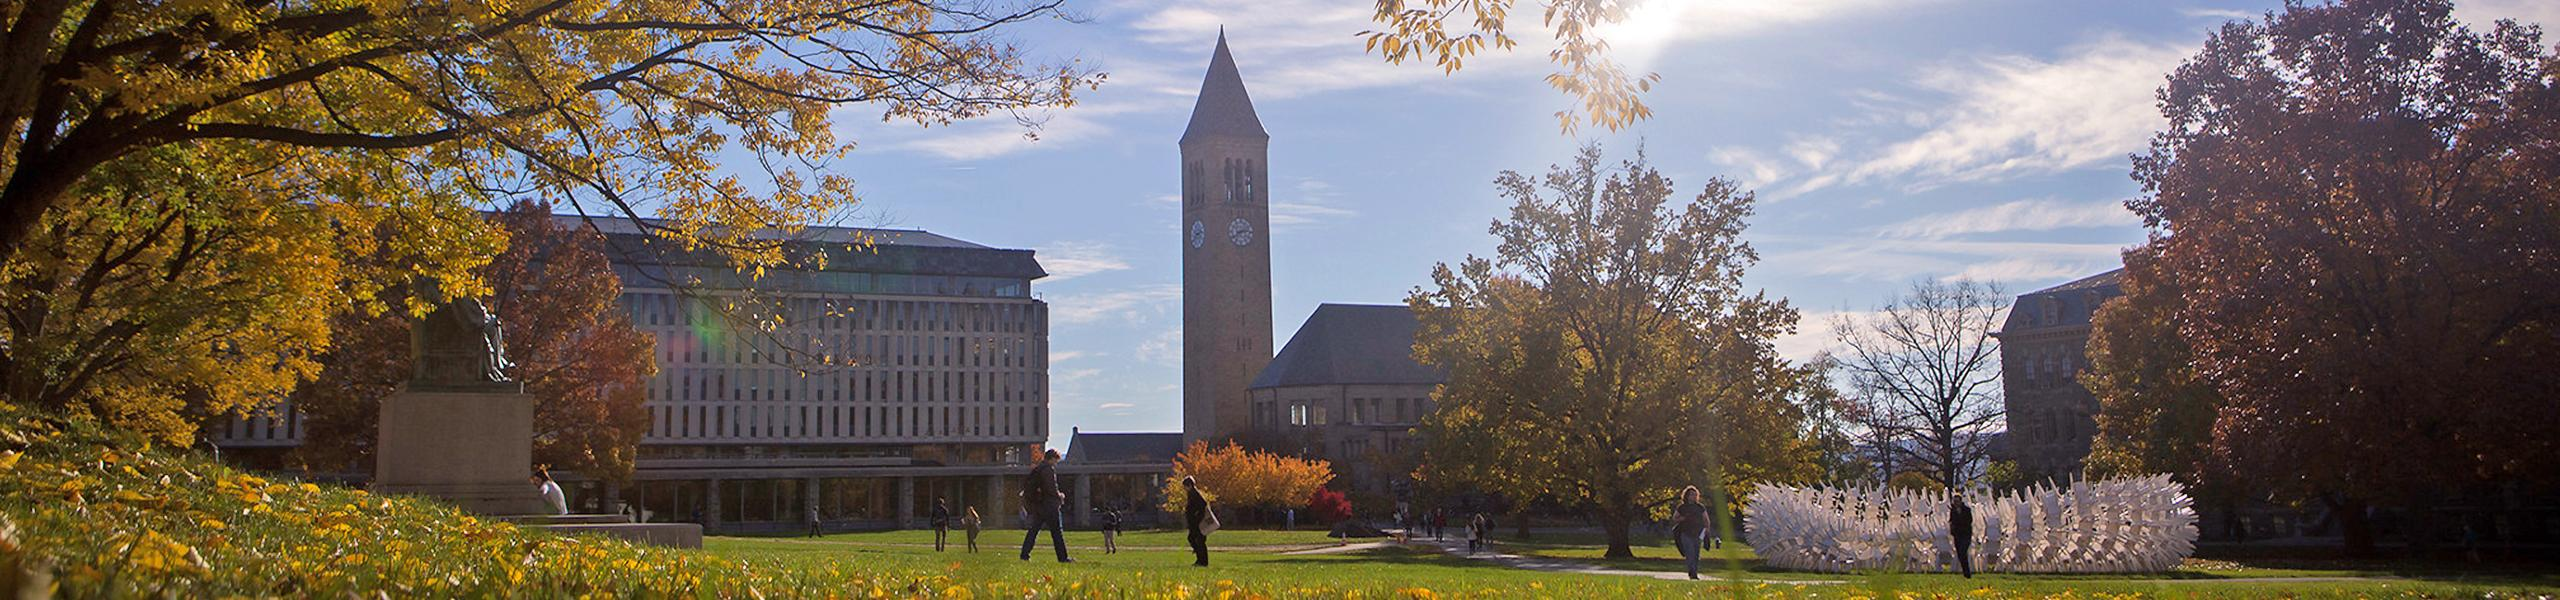 Cornell Campus in the Fall, with McGraw Tower as the focus